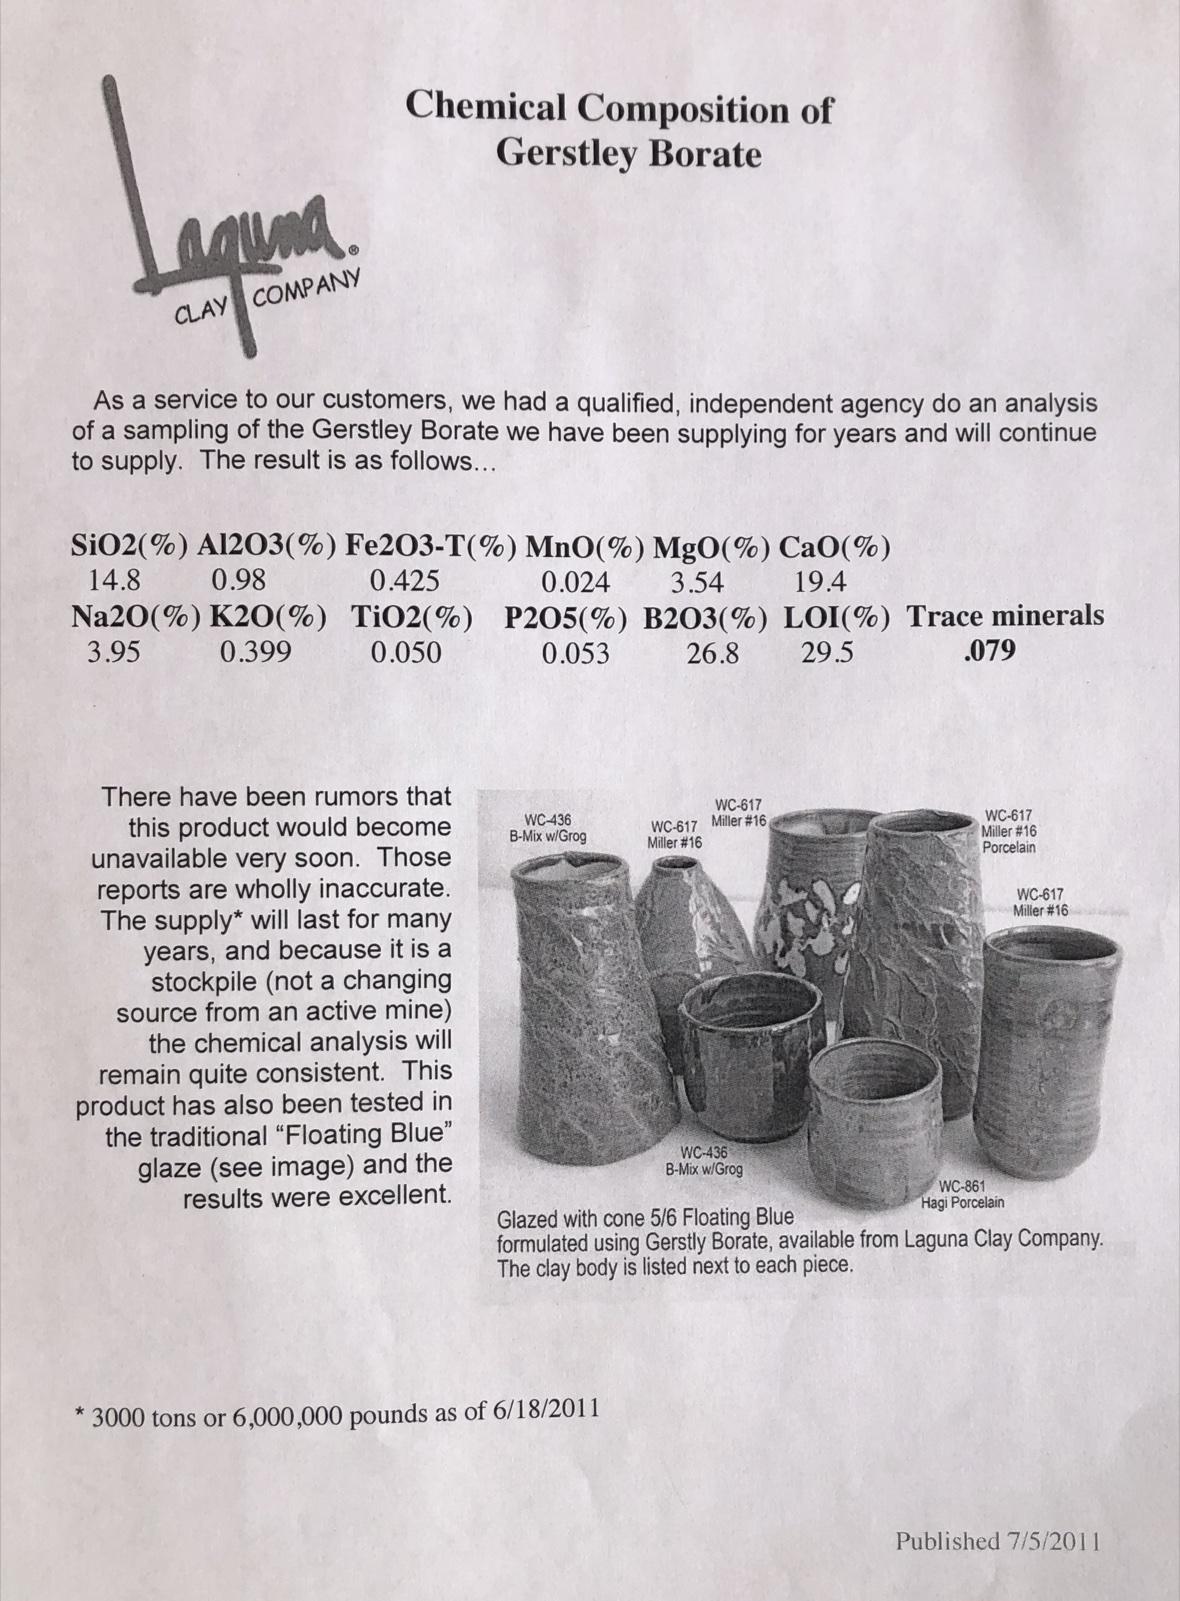 Gerstley Borate official composition page from Laguna Clay